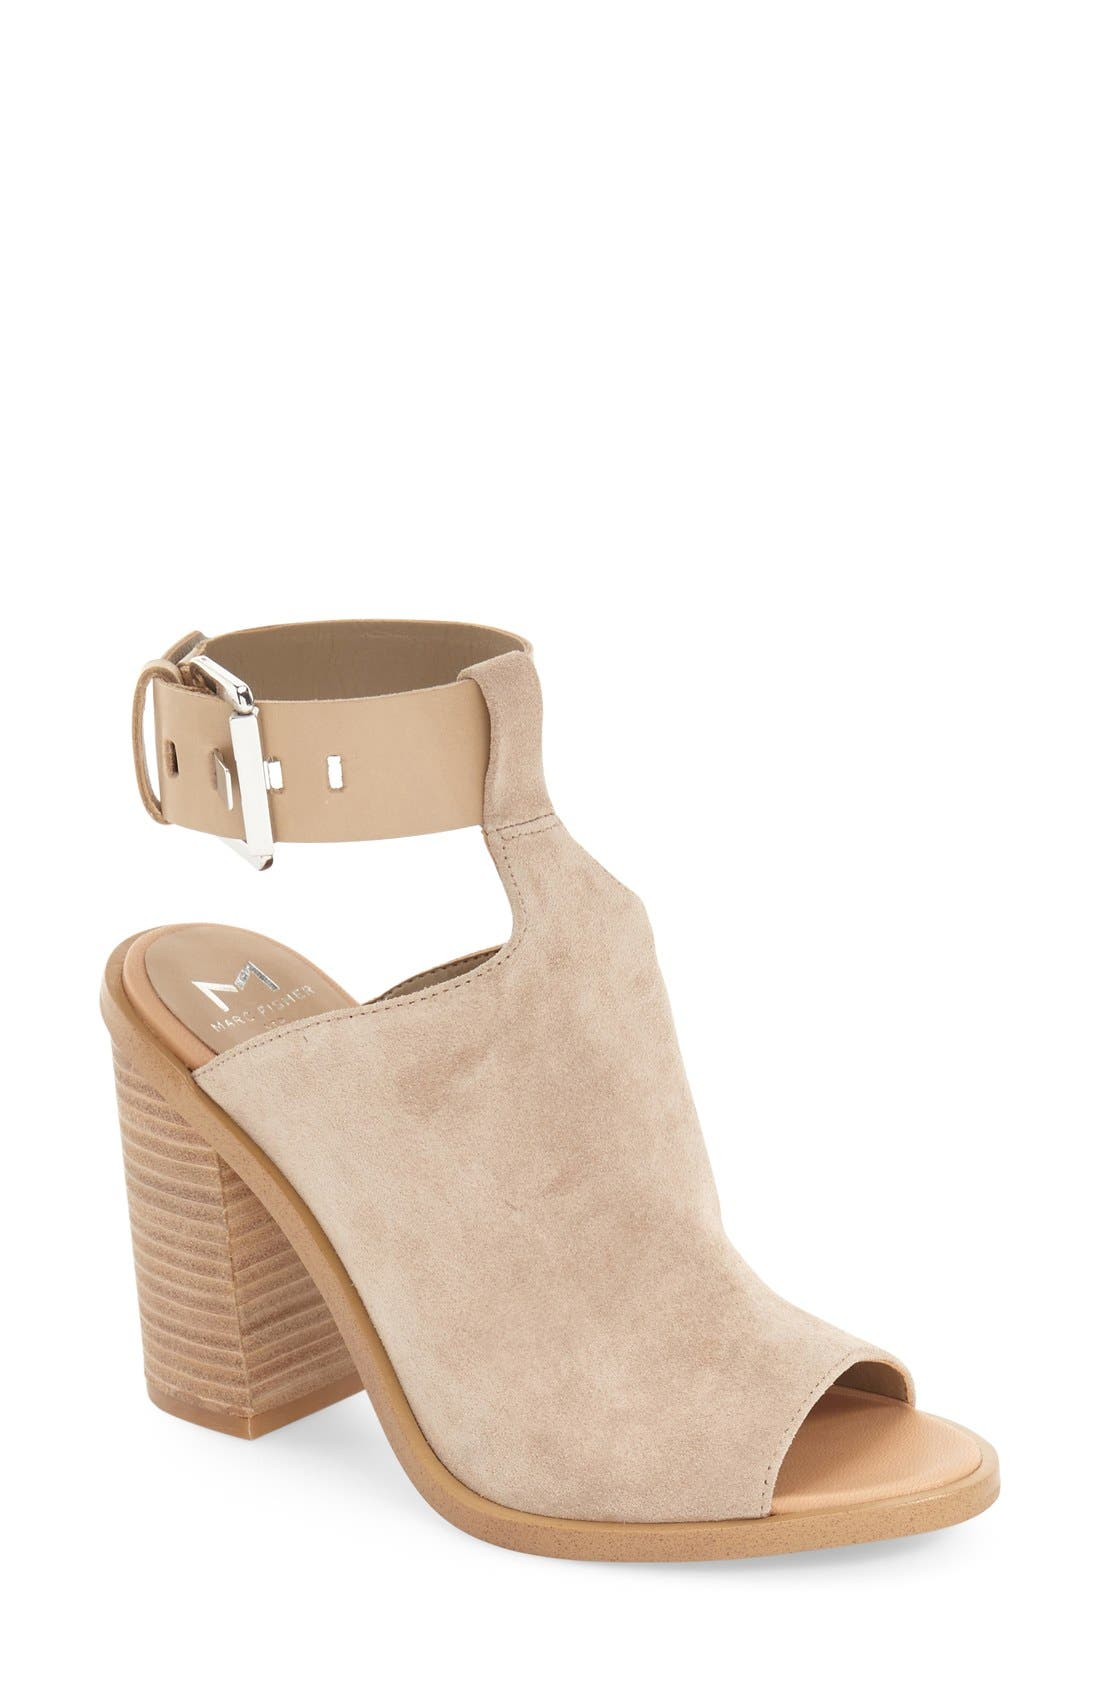 Main Image - Marc Fisher LTD Vashi Ankle Strap Sandal (Women)